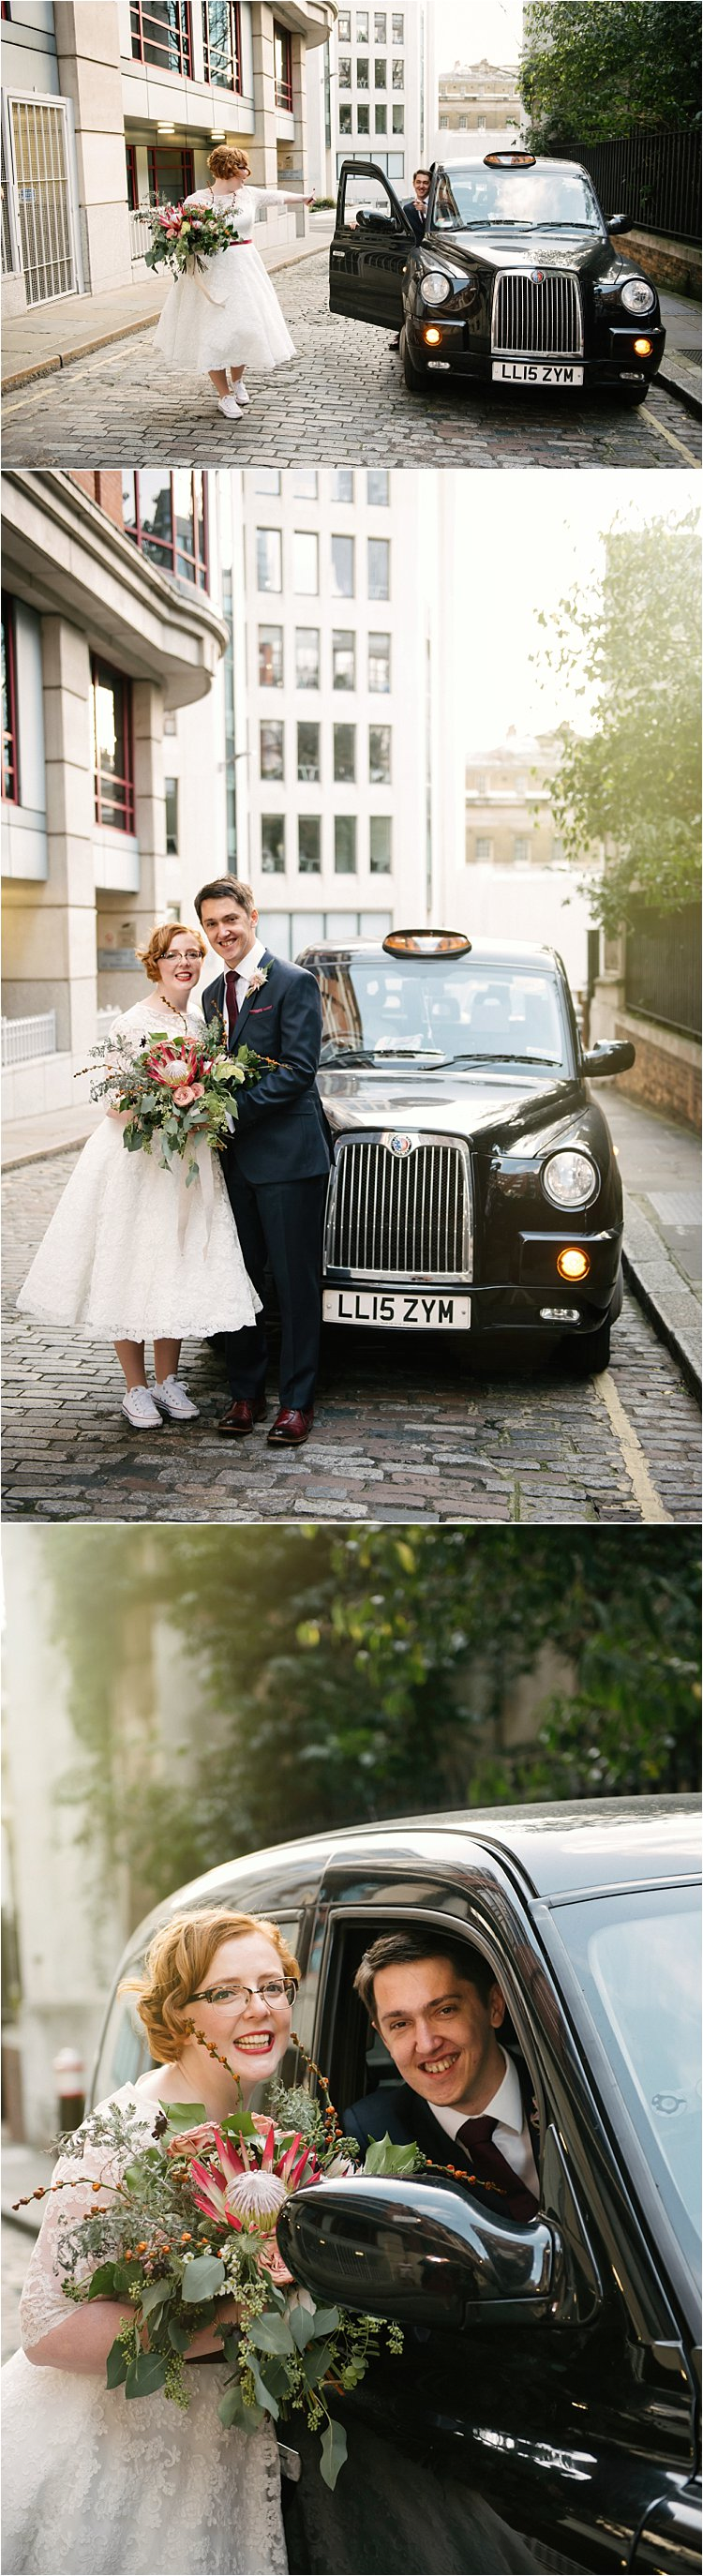 london-city-wedding-the-wren-coffee-jen-kevin